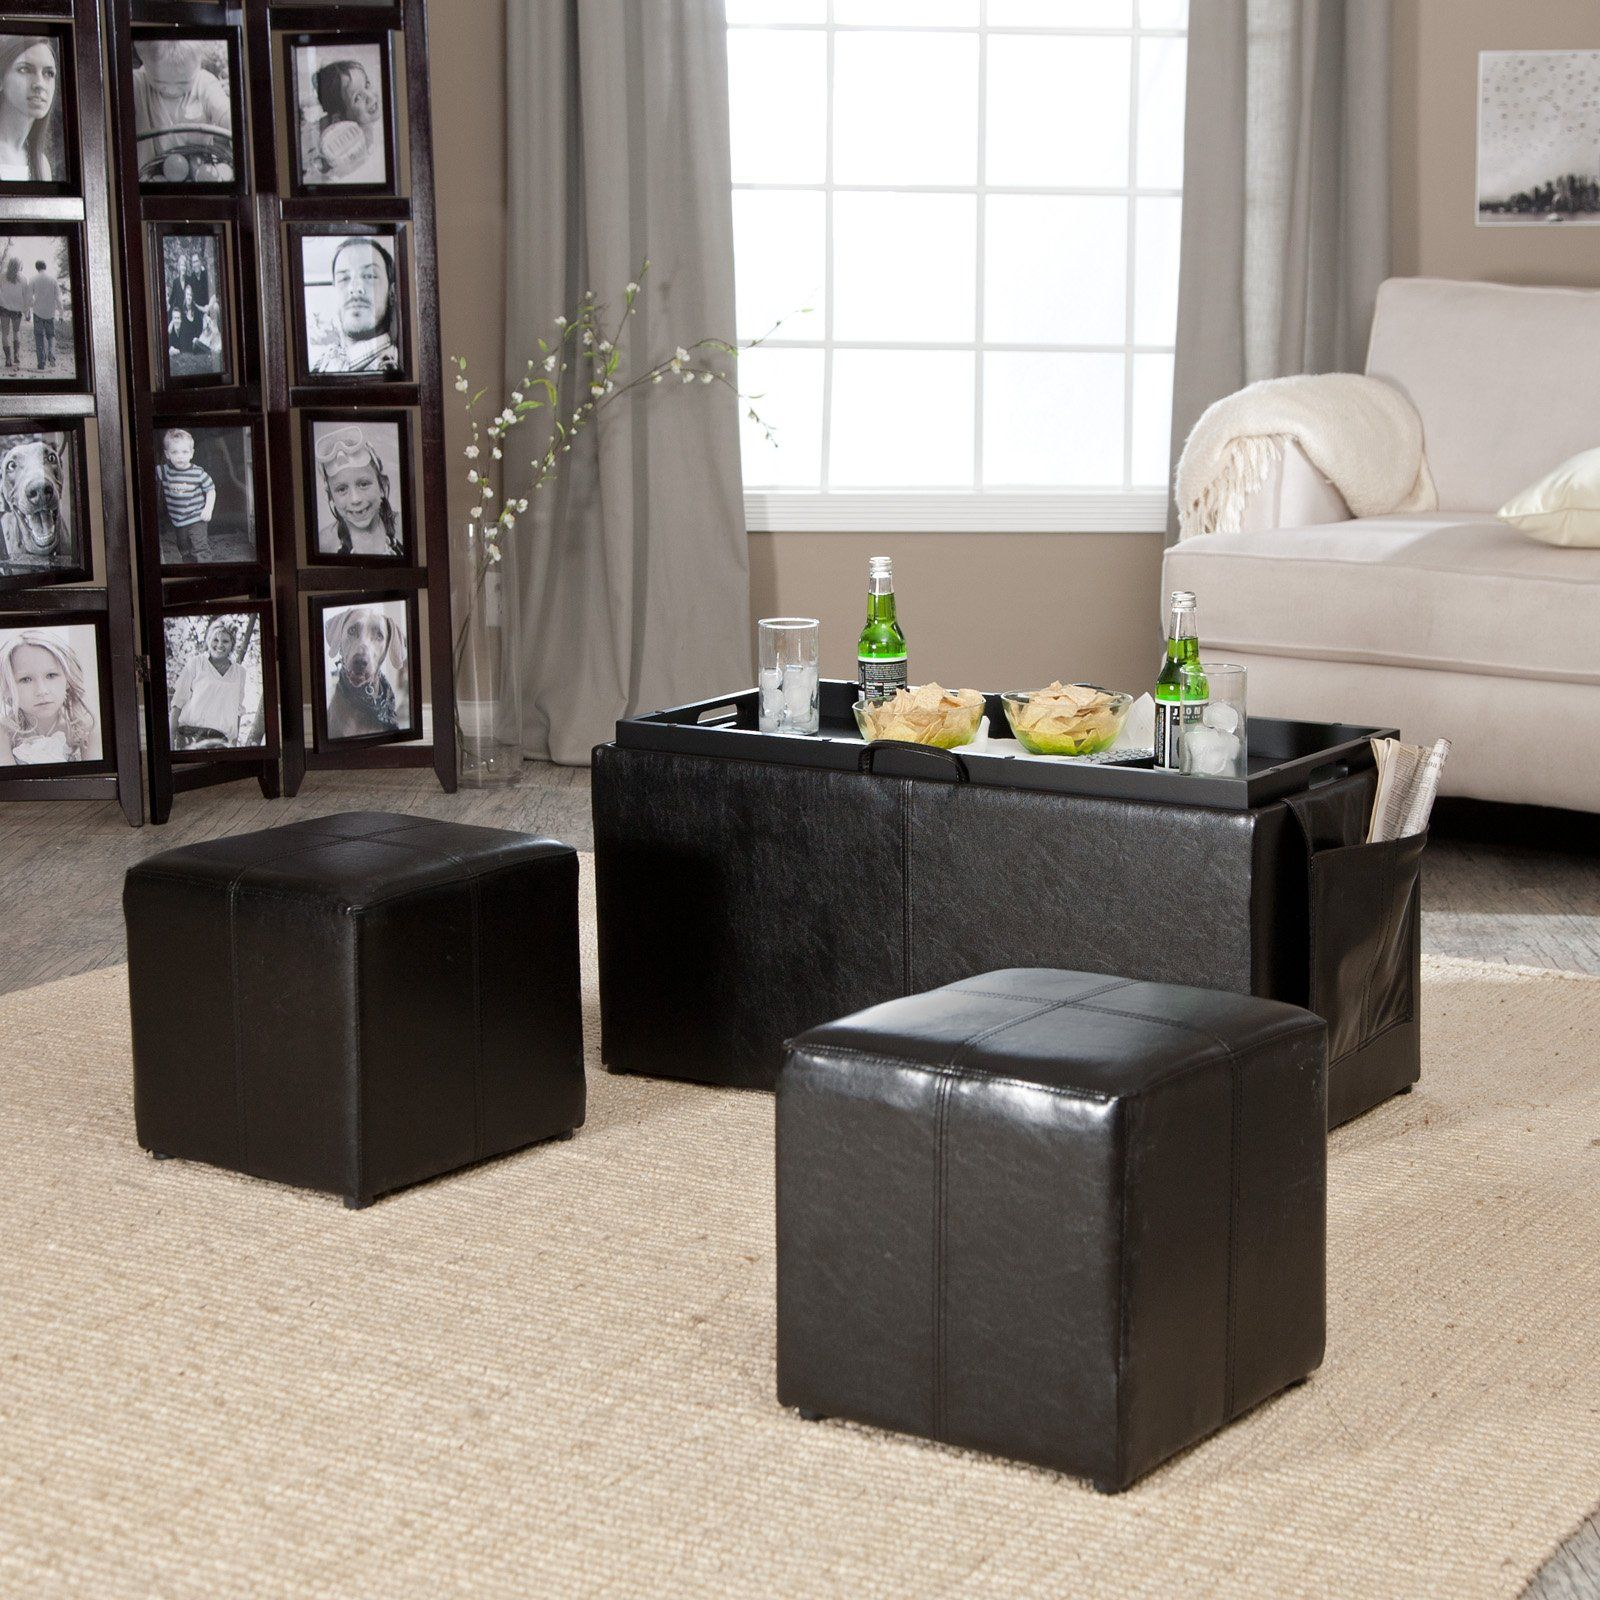 Hartley Coffee Table Storage Ottoman With Tray Side Ottomans Pocket Www Coffeetablesgalore